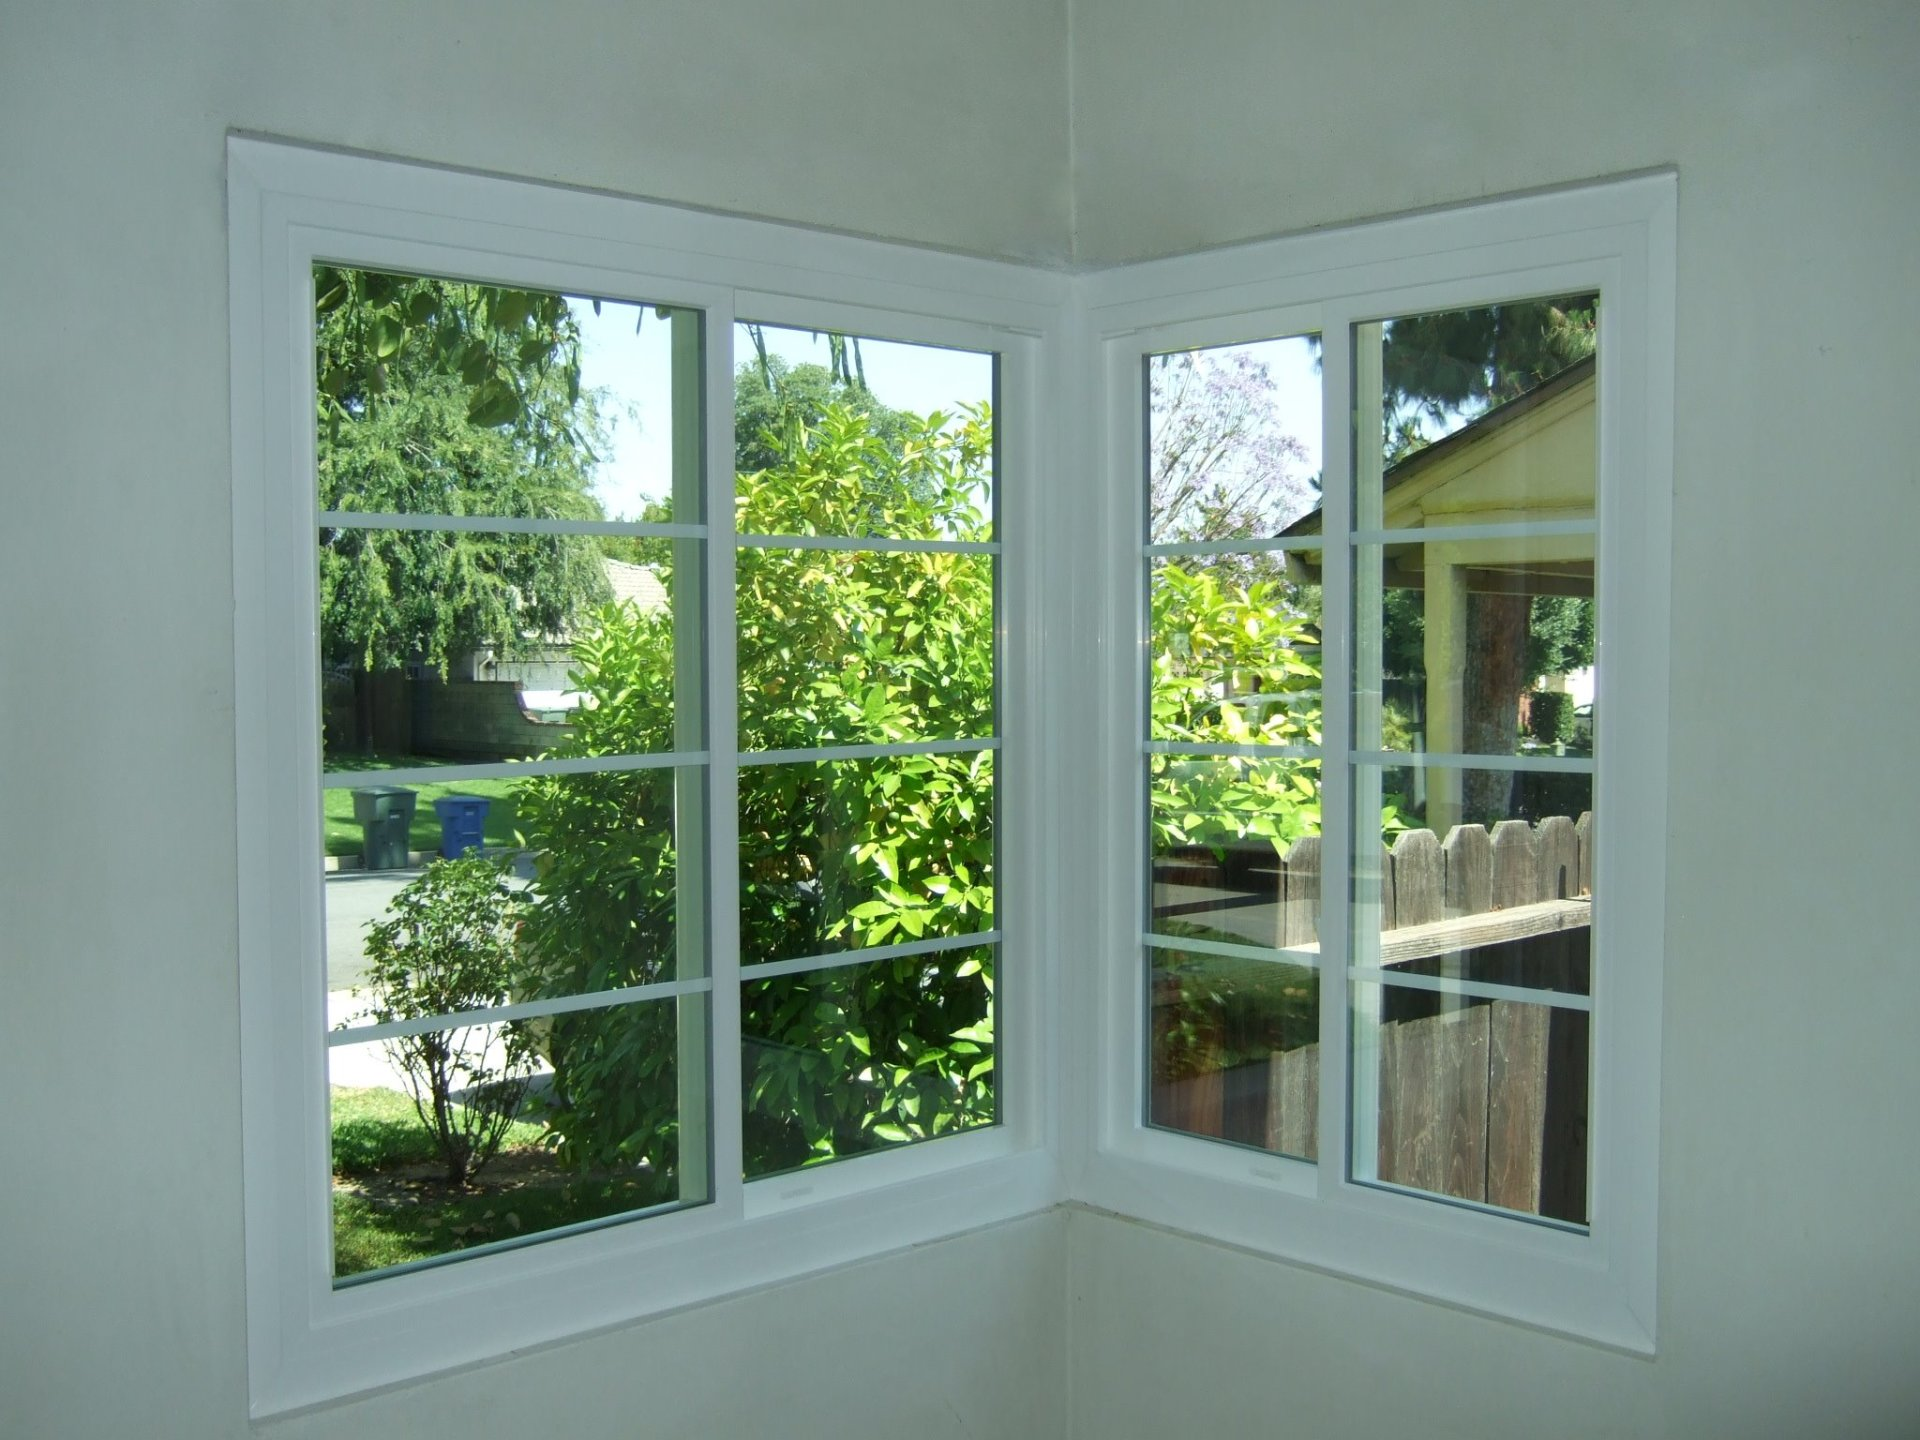 Corner Window After (Inside View)